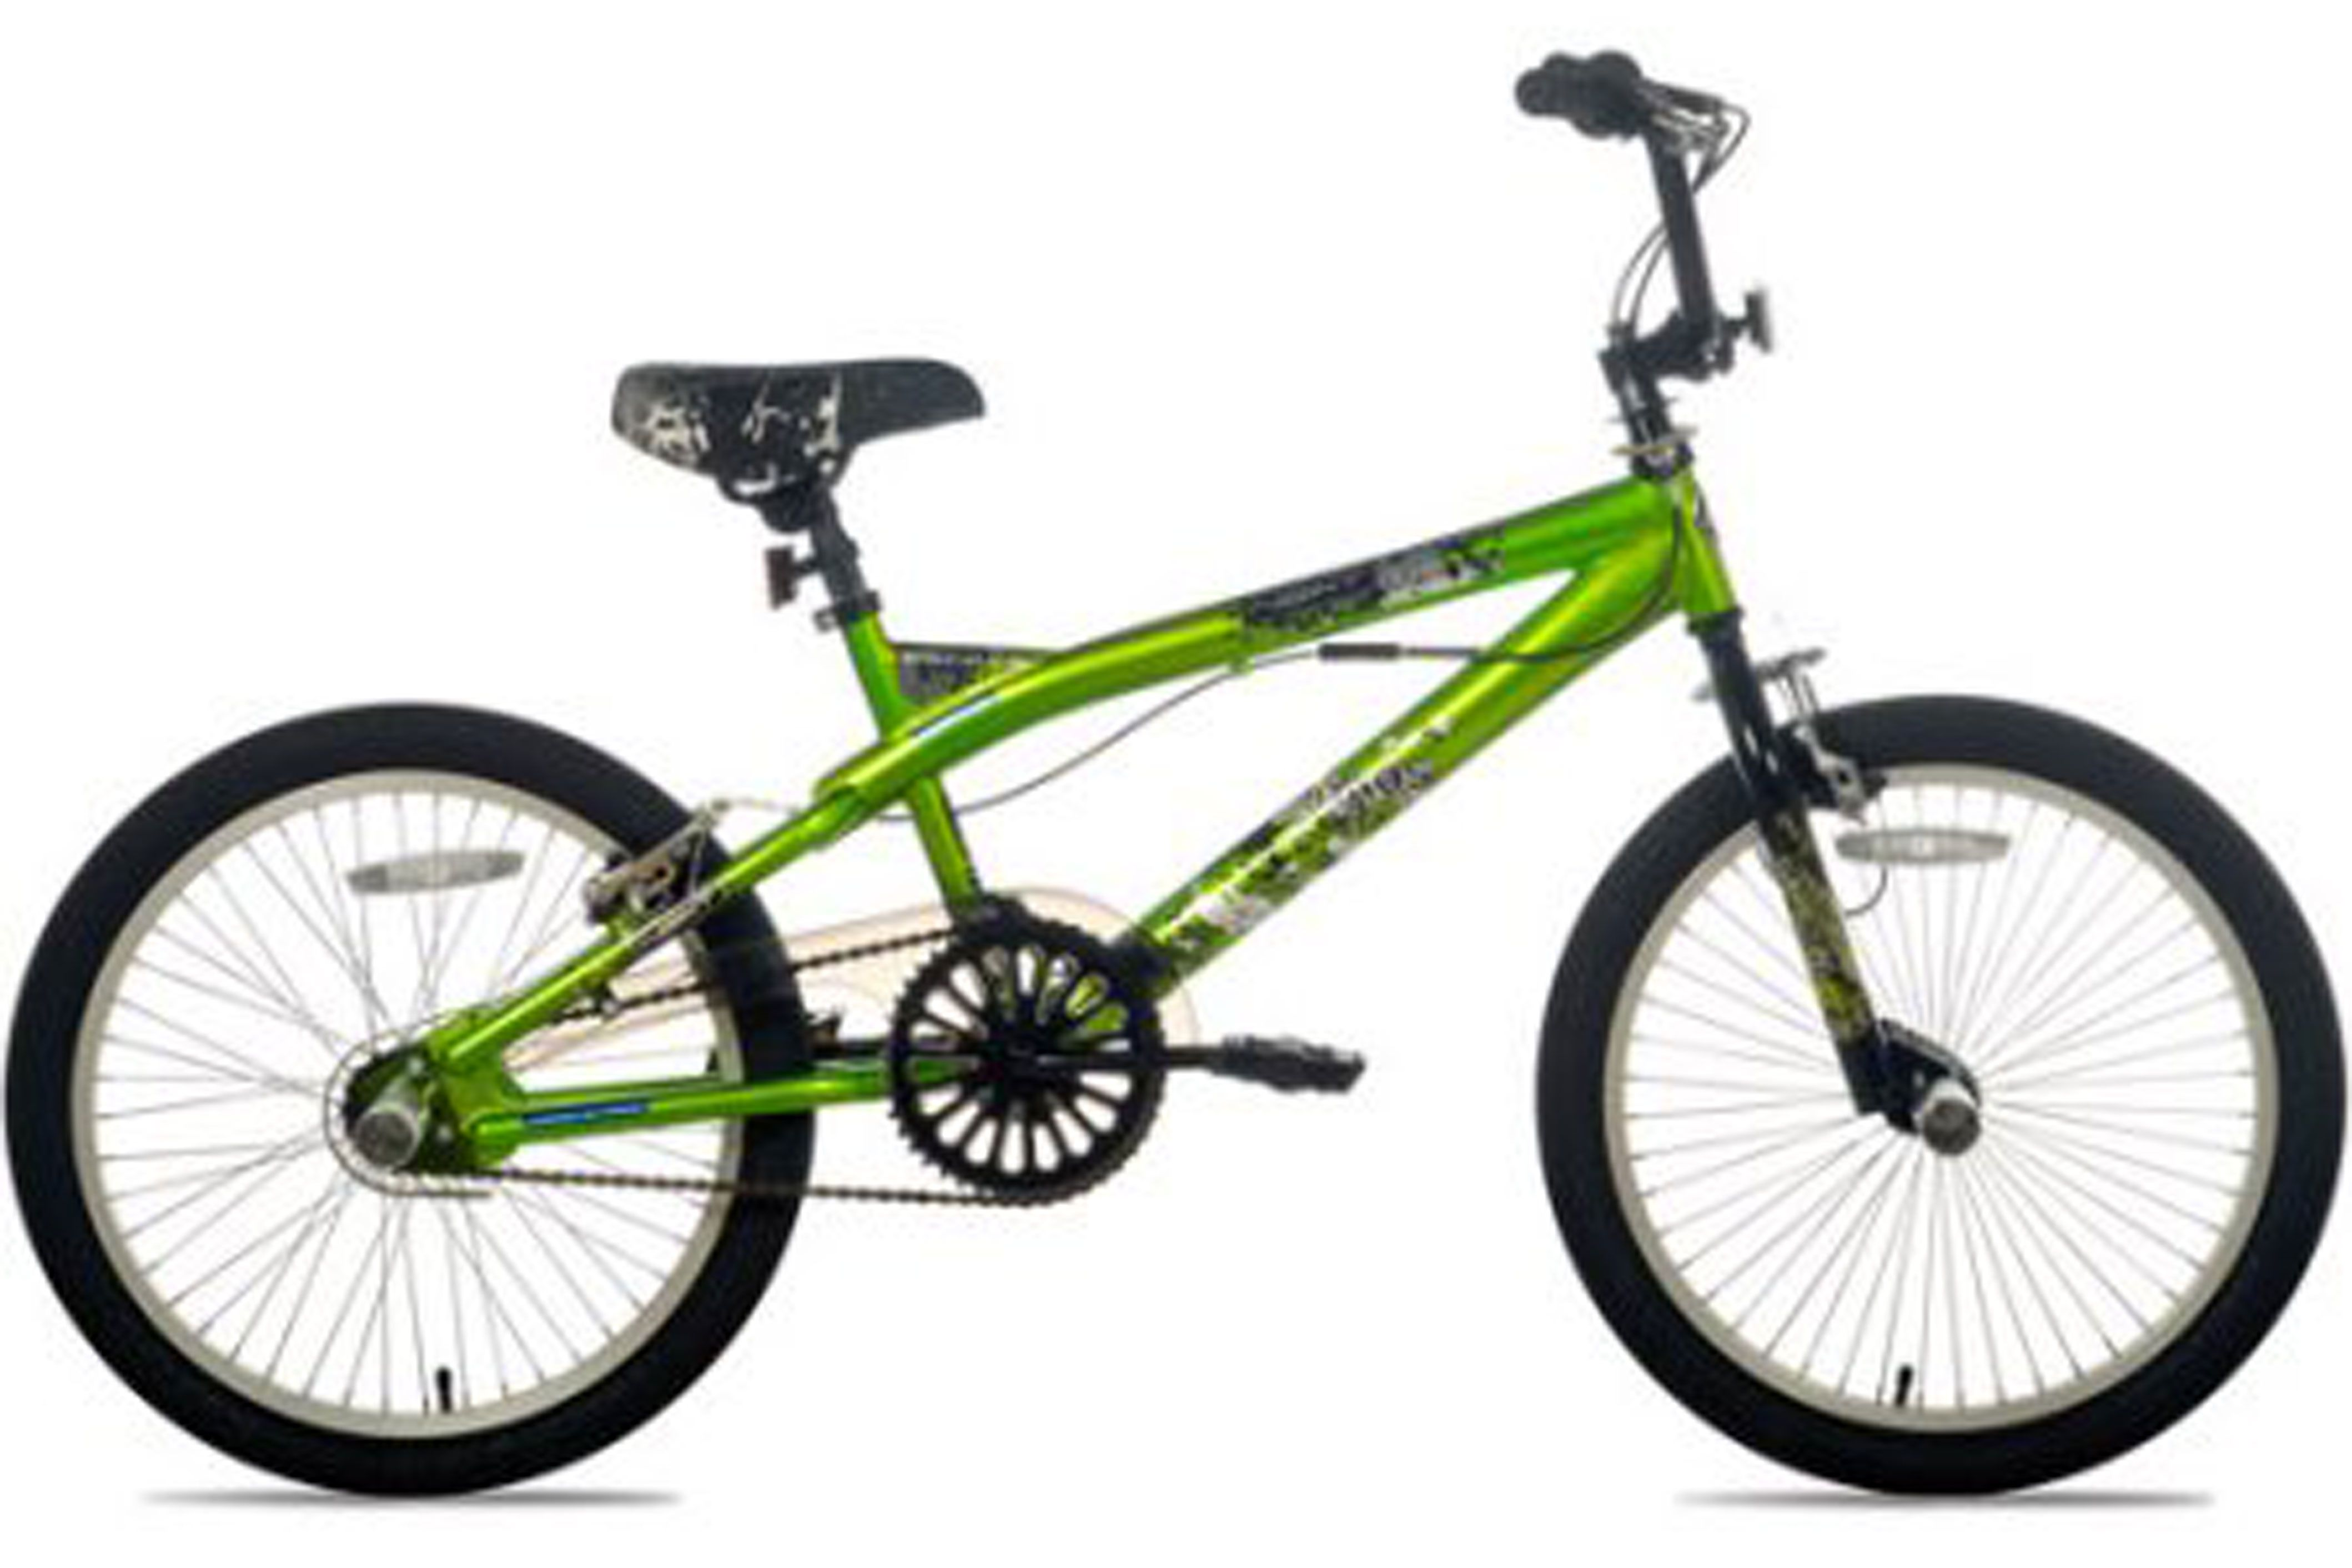 Kids Pedal Bikes Comparison Charts Best Kids Bike Kids Bike